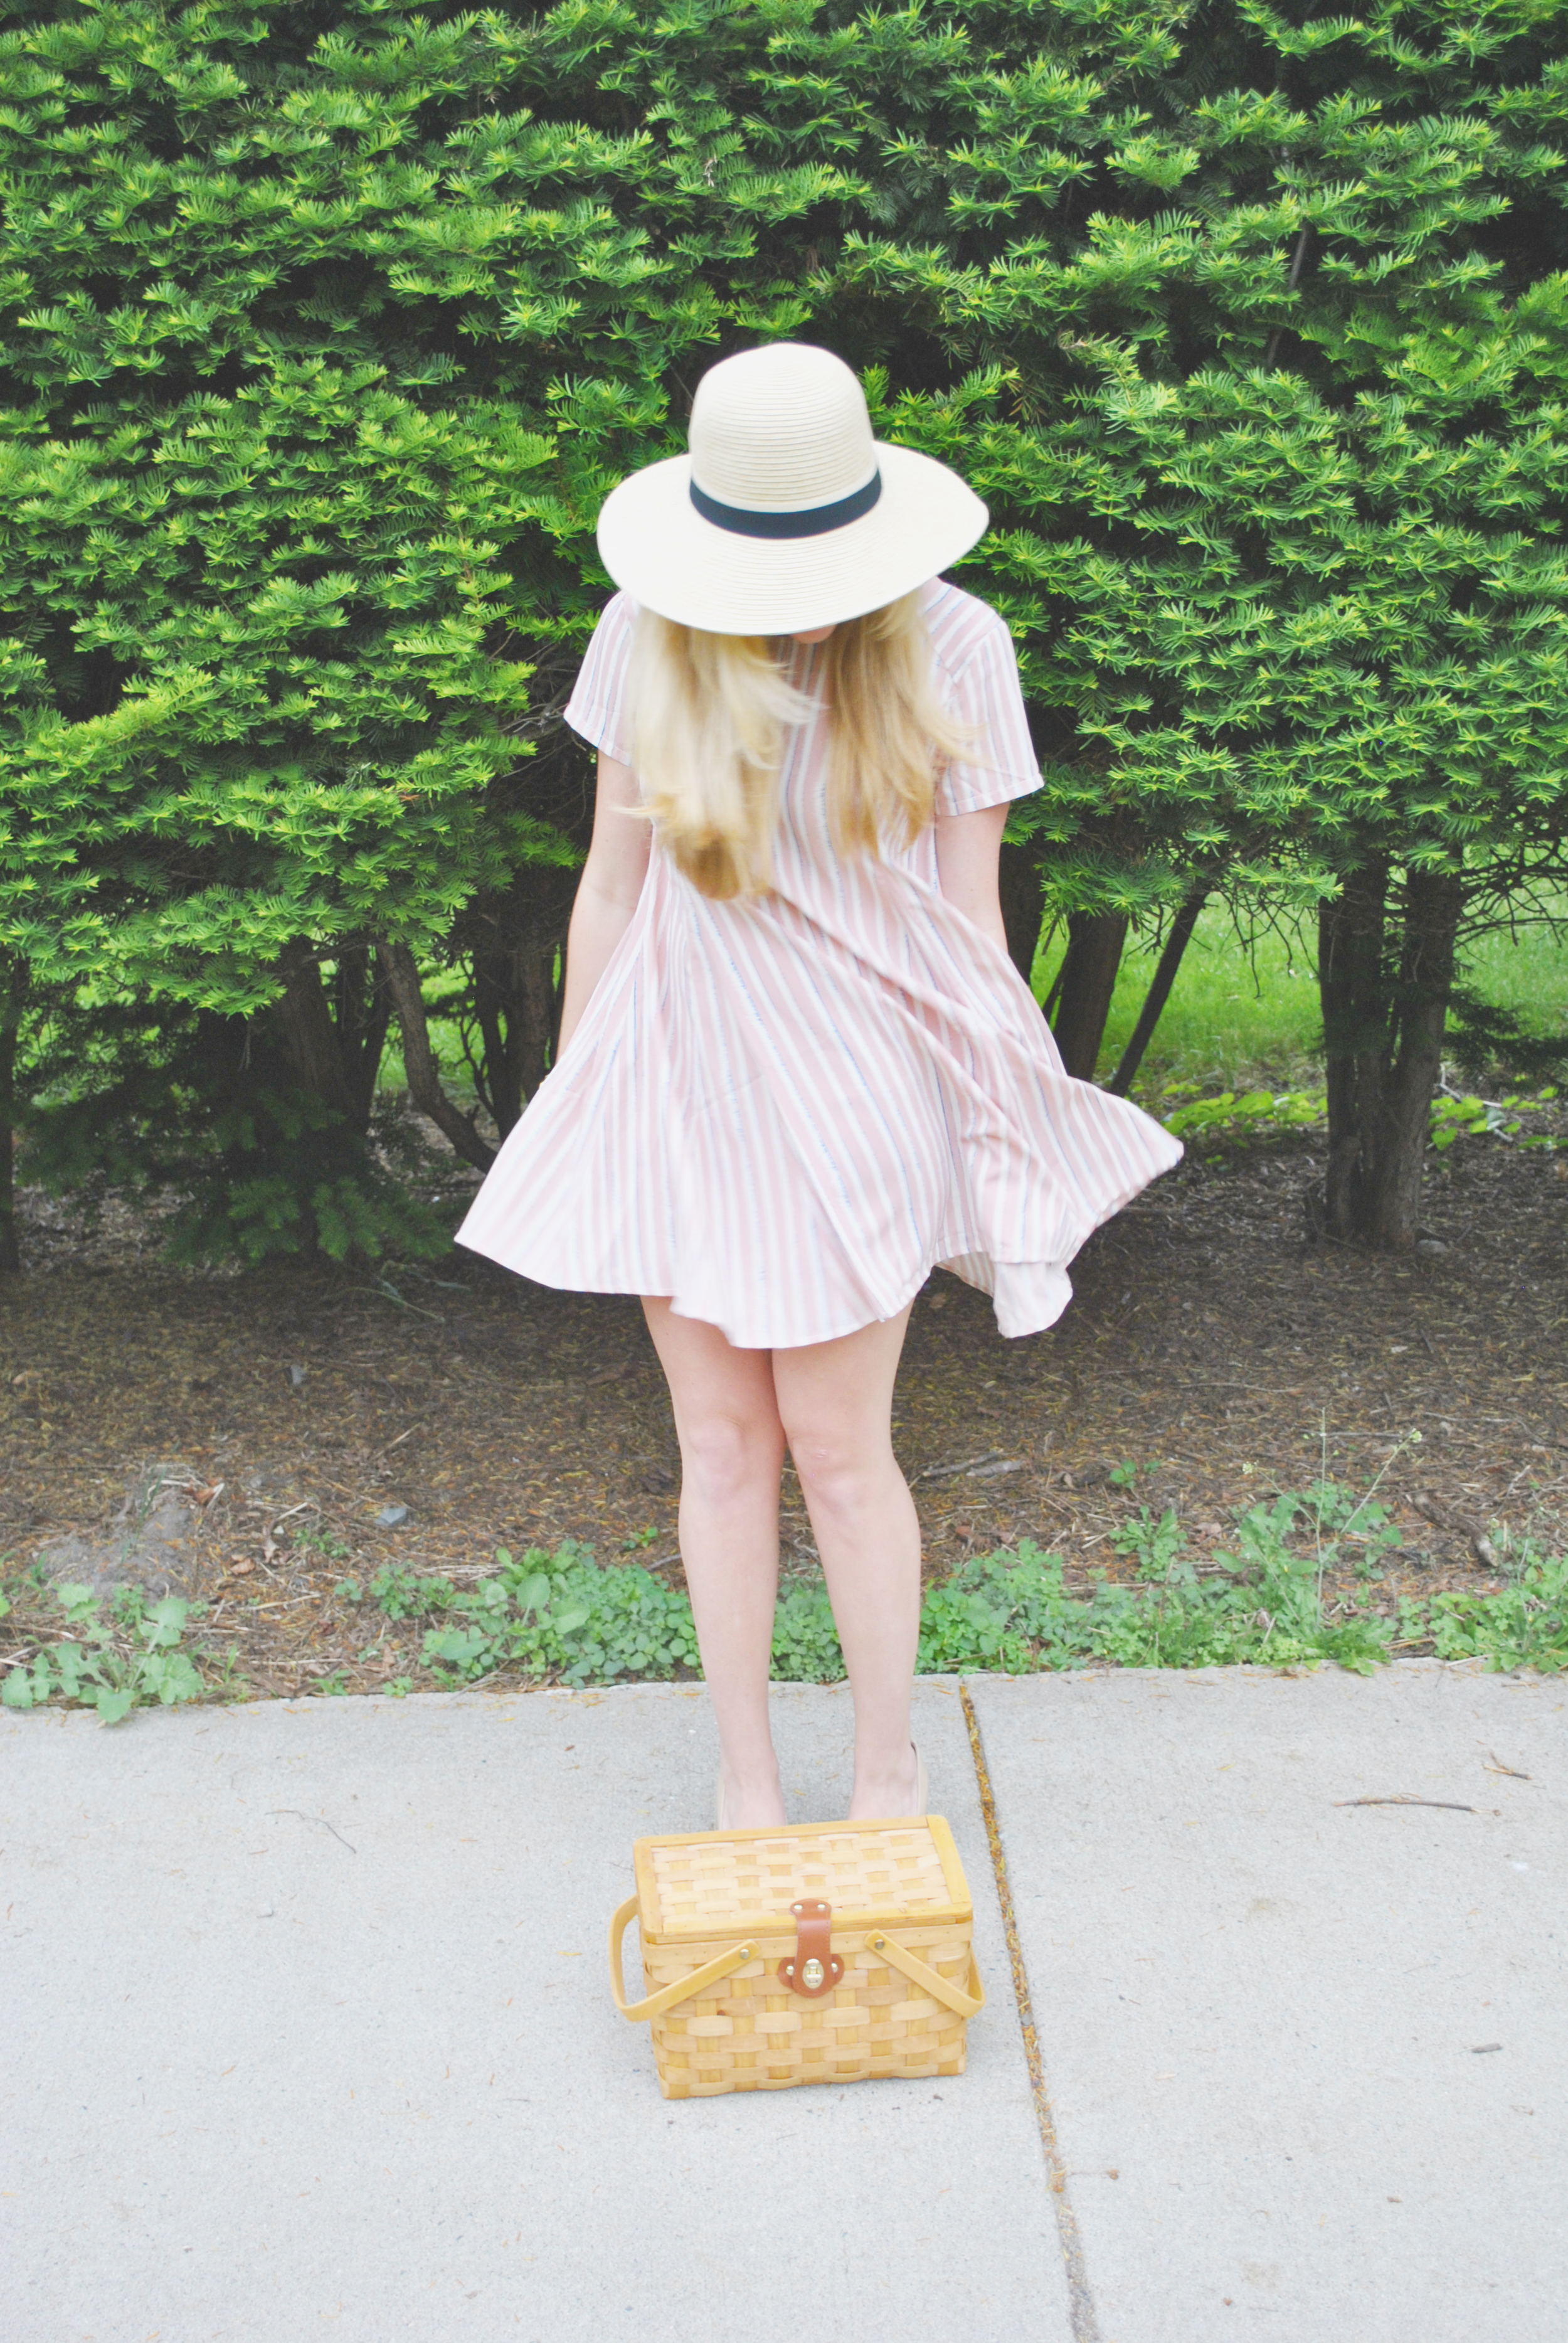 thoughtfulwish | ootd // fashion blog // fashion blogger // boston // preppy // straw hat // summer outfit // picnic outfit // swing dress // lush // meredith wish